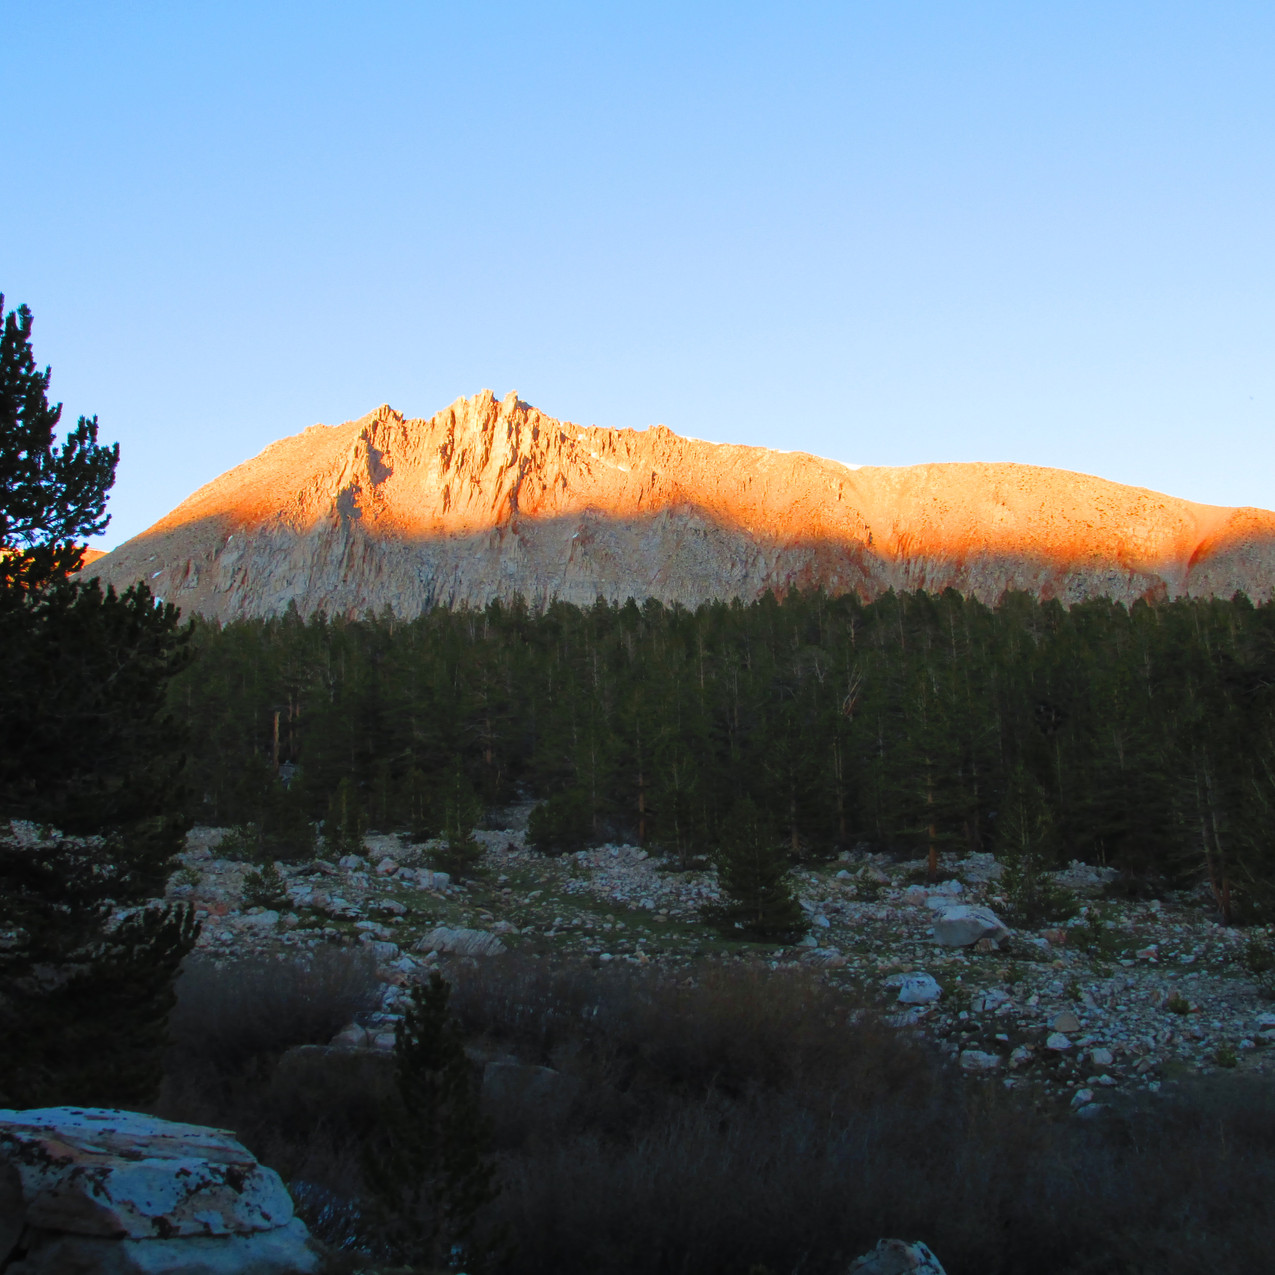 I looked forward to seeing alpenglow in the Sierras.  This was my first glimpse.